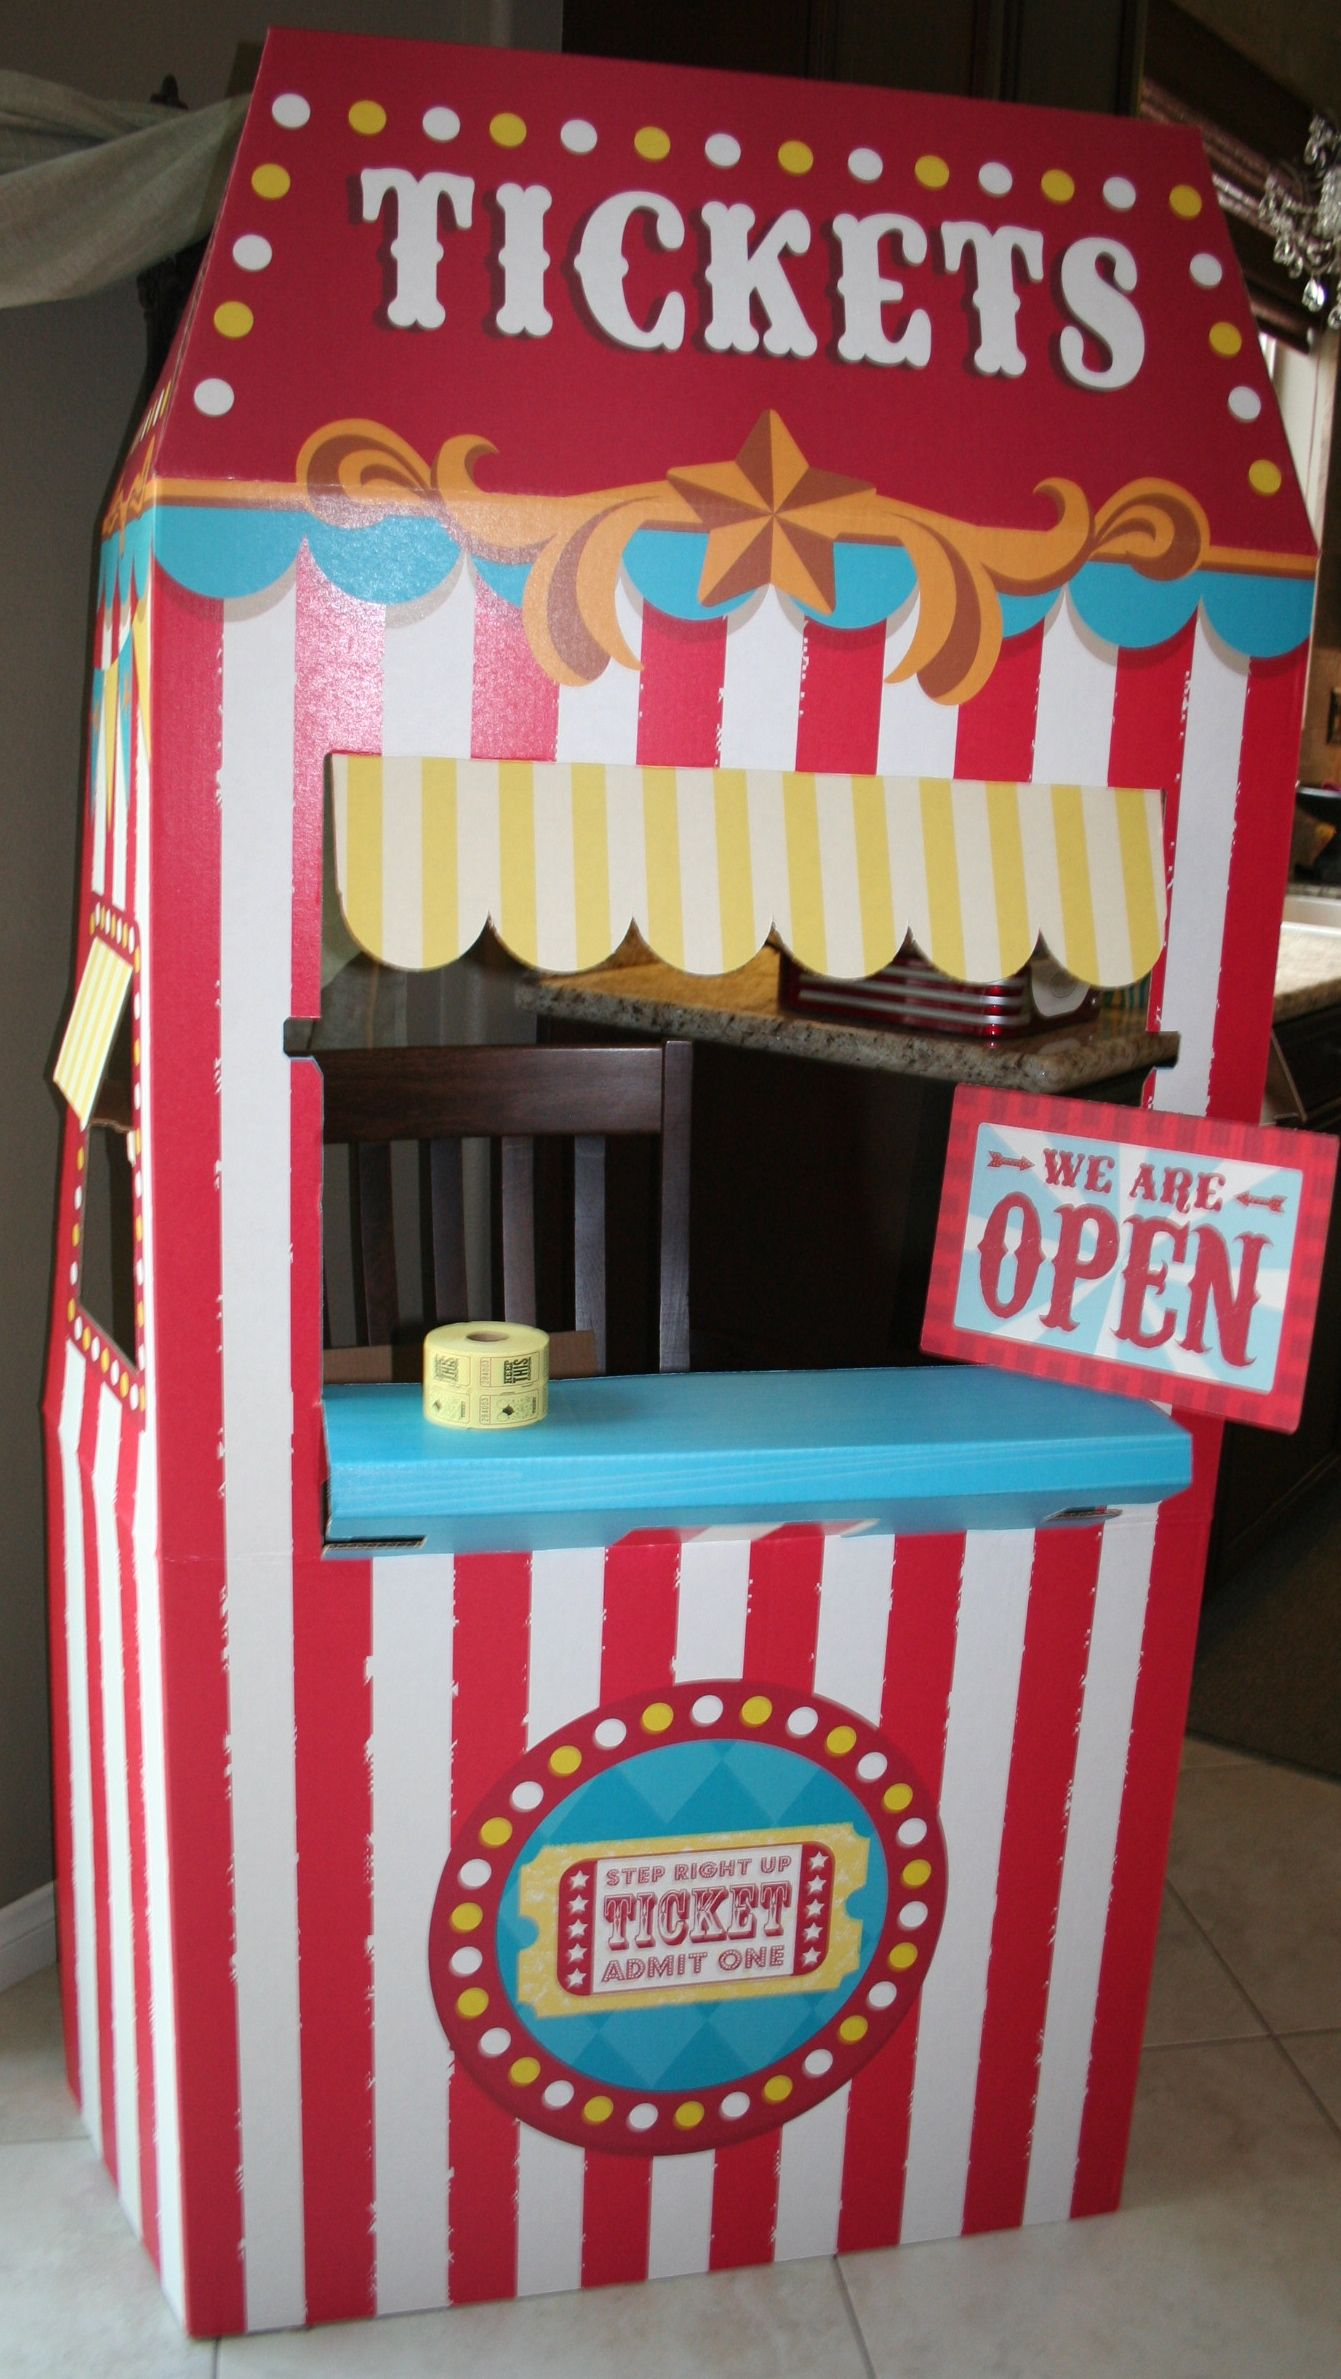 Carnival party ticket booth from Birthday Express & Carnival party ticket booth from Birthday Express | My parties and ...